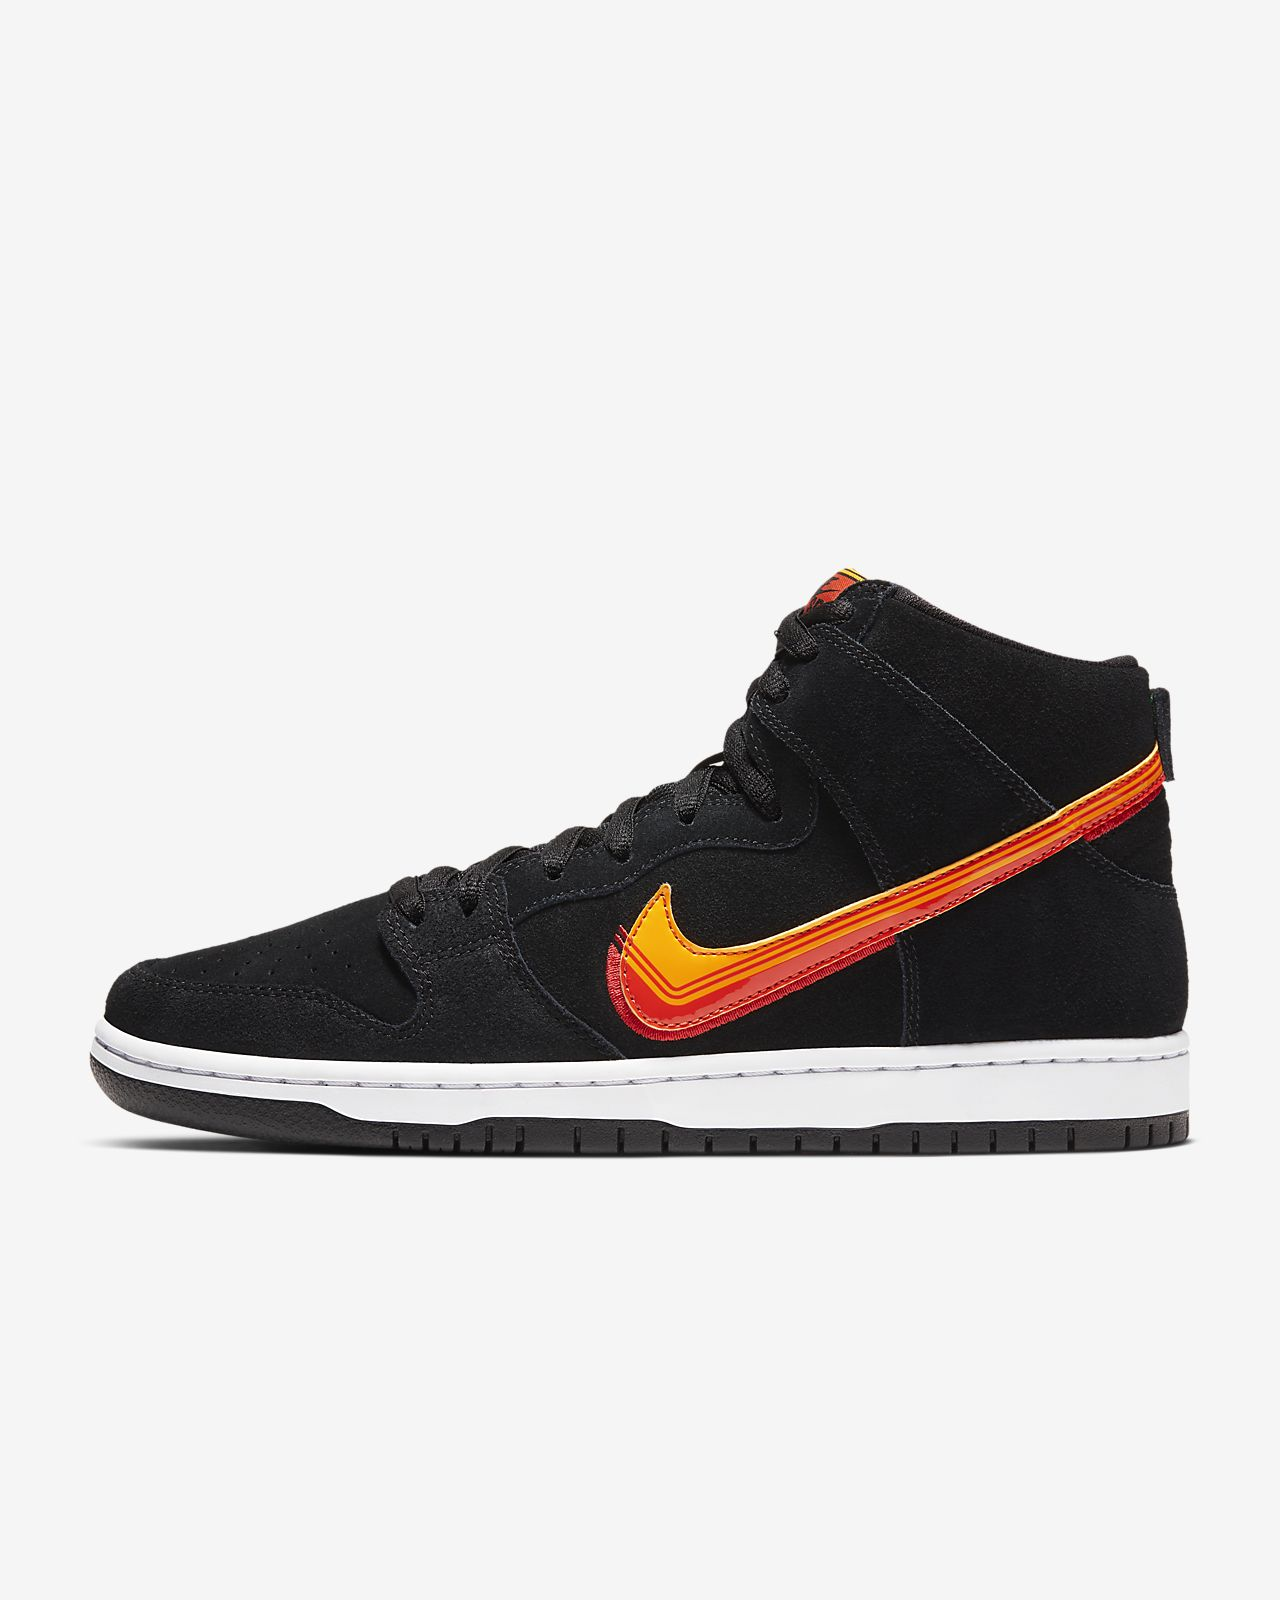 Nike Men's High Sneakers Shoes | Stylicy Malaysia